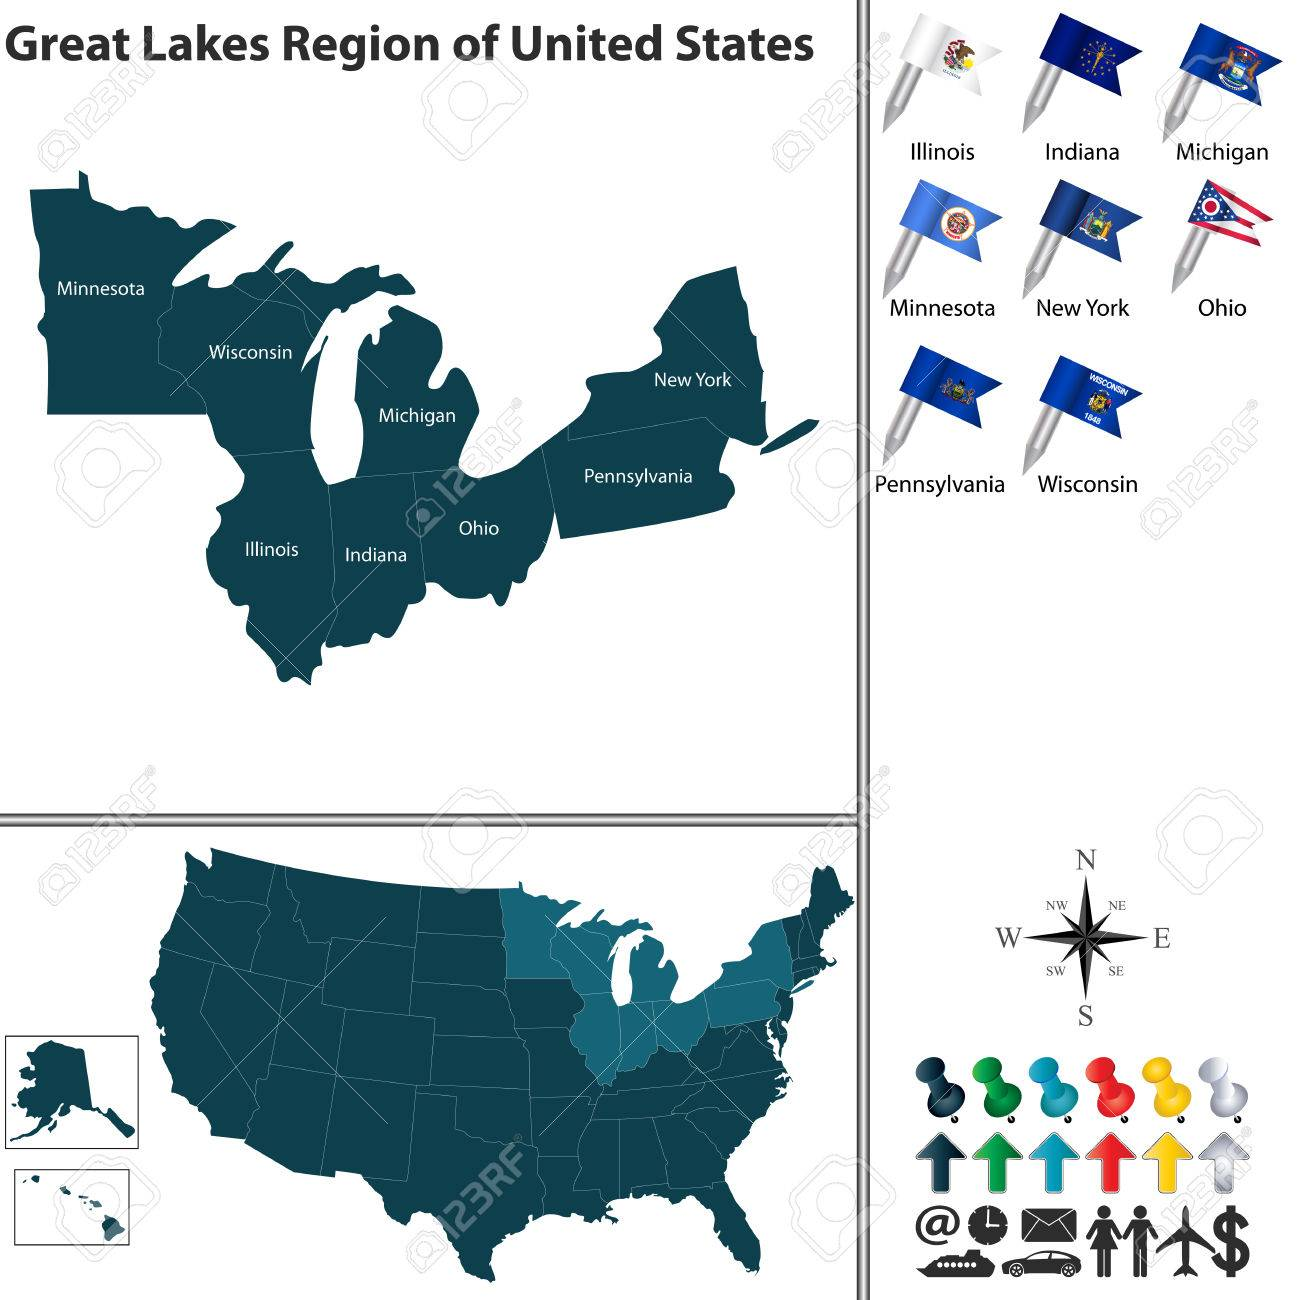 Great Lakes Facts And Figures The Great Lakes US EPA Great Lakes - Us map with great lakes